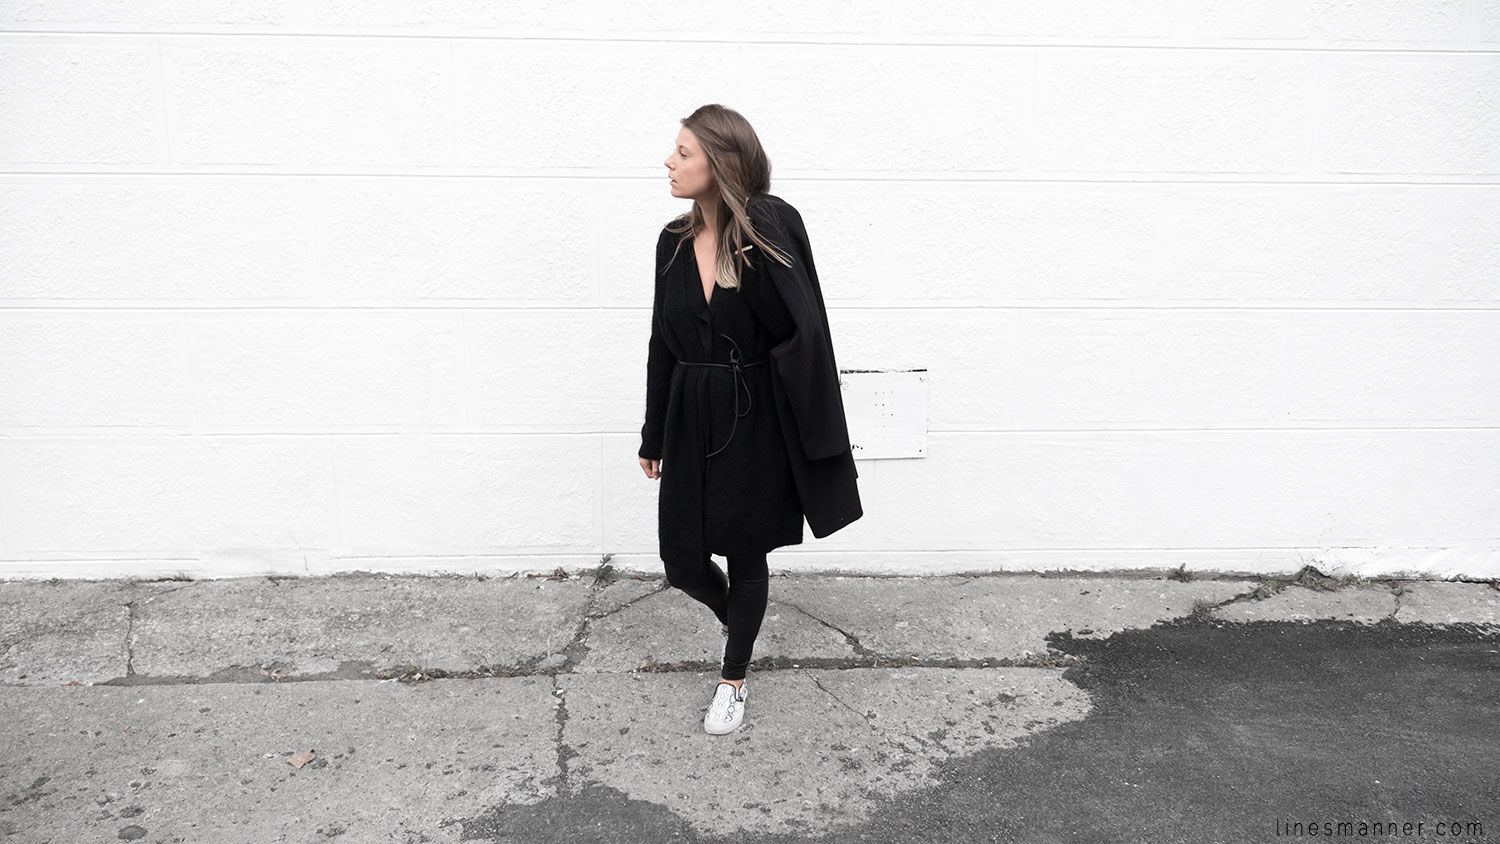 Lines-Manner-Timeless-Comfort-Essentials-Monochrome-Trend-Minimal-Textures-Oversized-Warm-Fall-Leather-Details-Simplicity-Modern-Basics-Outfit-Structure-2